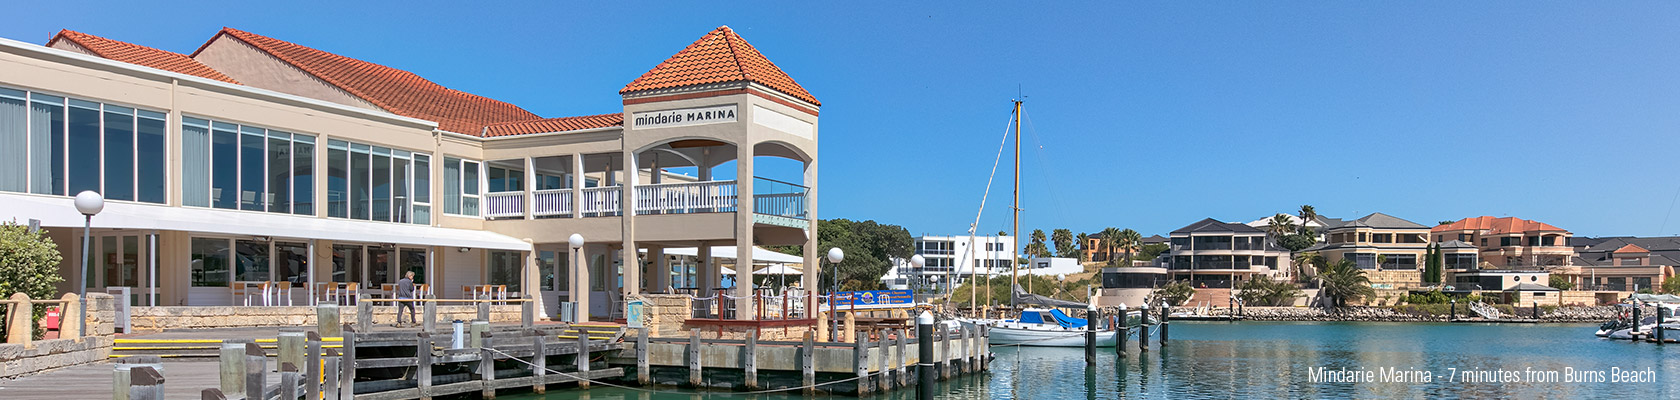 Burns Beach Shops and Entertainment Nearby